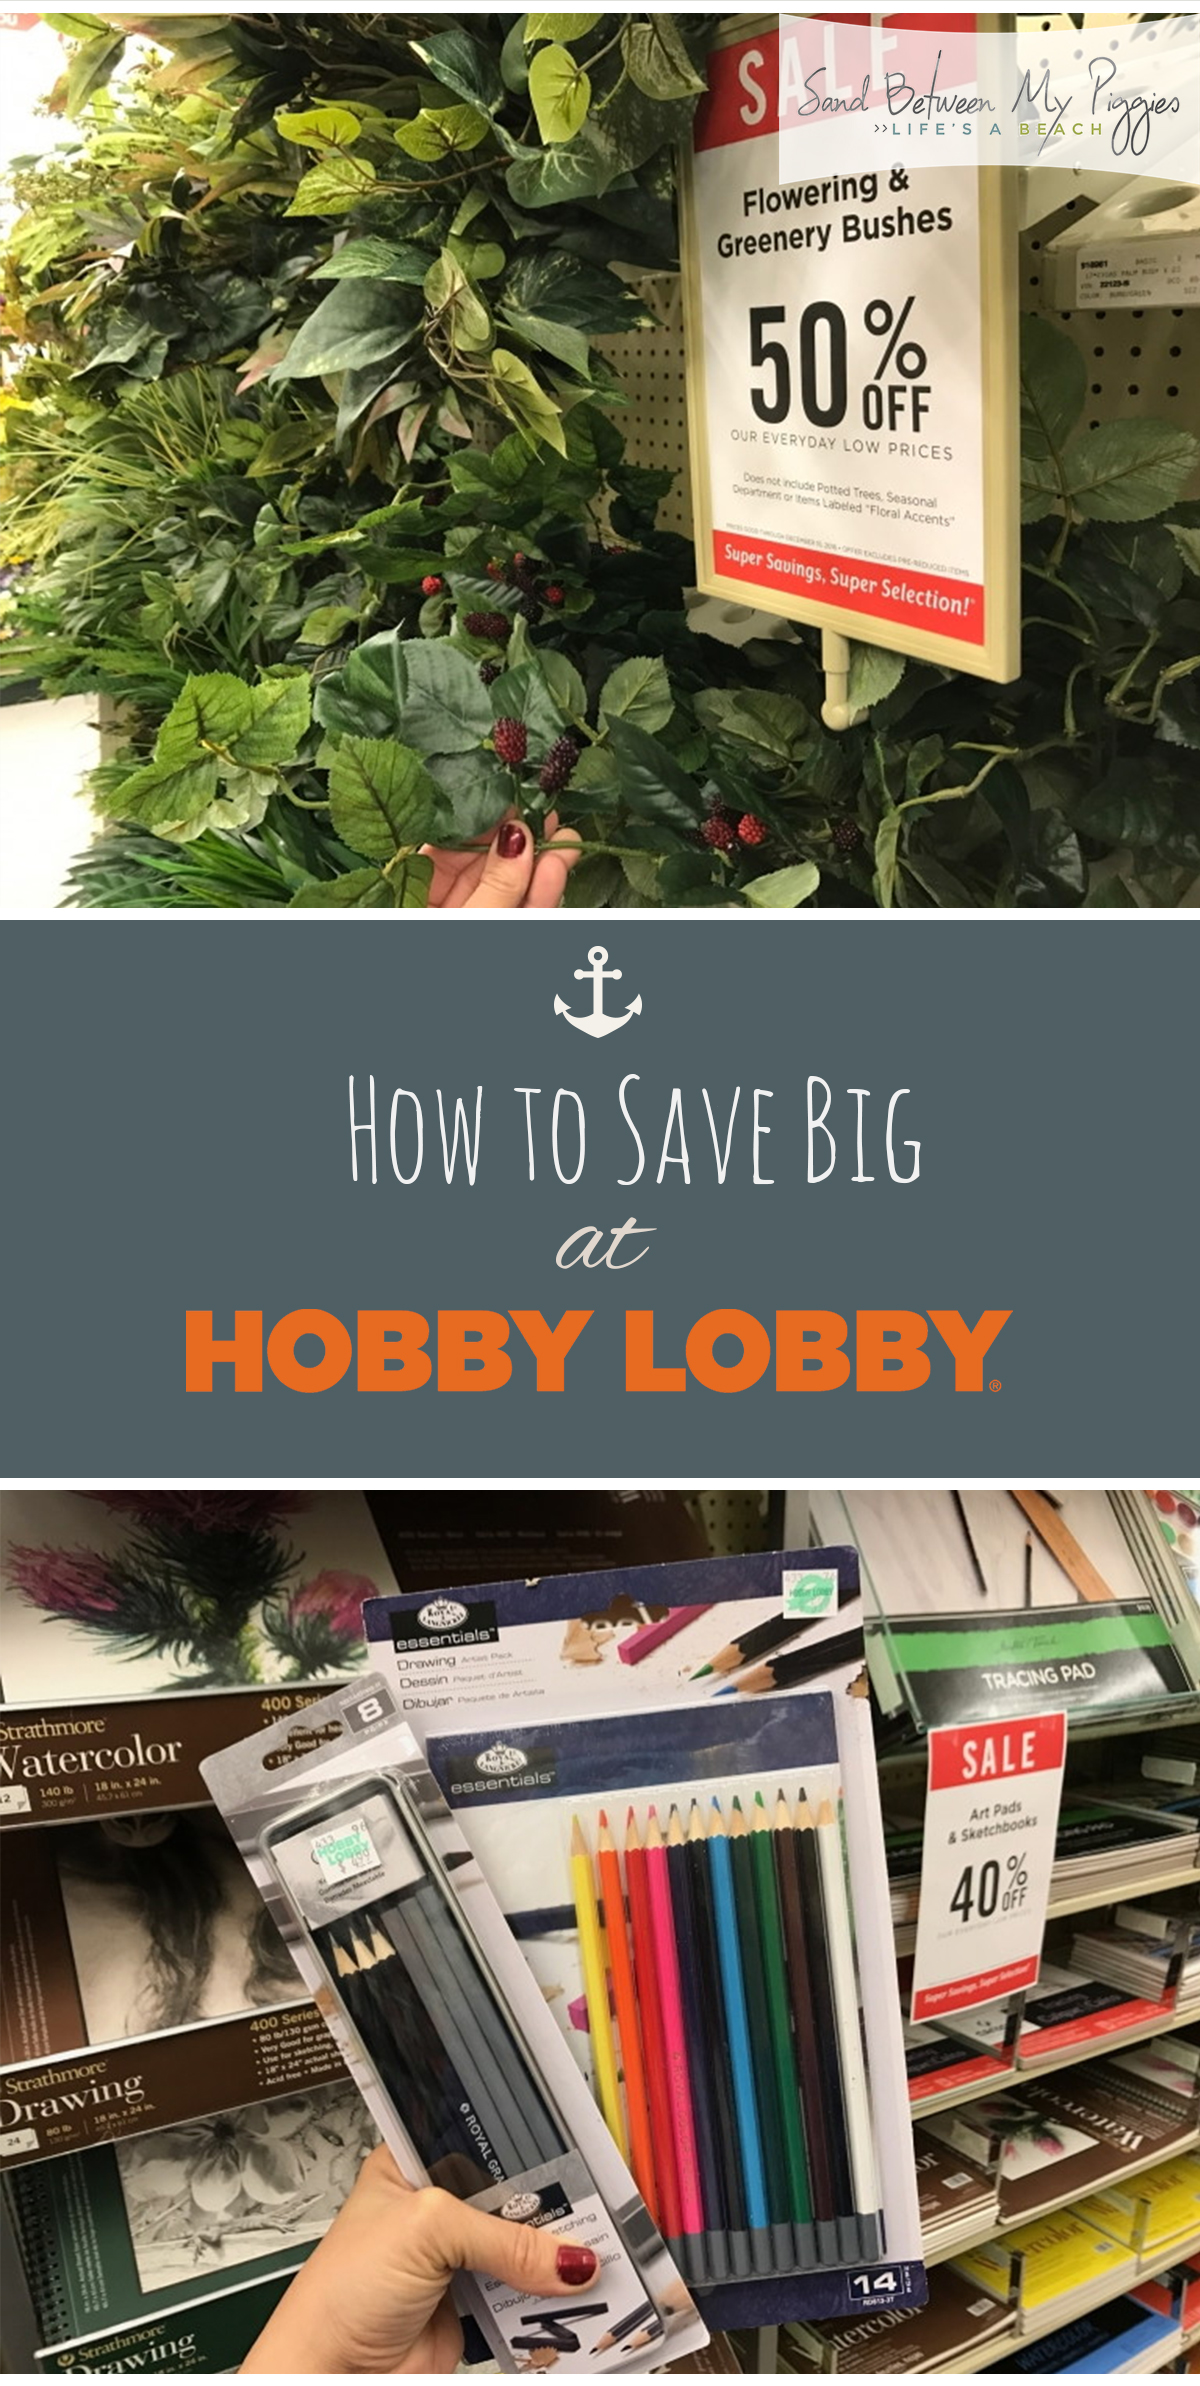 How to Save Big Bucks at Hobby Lobby| Money Saving Hacks, Money Saving TIps and Tricks, How to Save Money at Hobby Lobby, Hobby Lobby Money Saving Tips and Tricks #HobbyLobby #SaveMoney